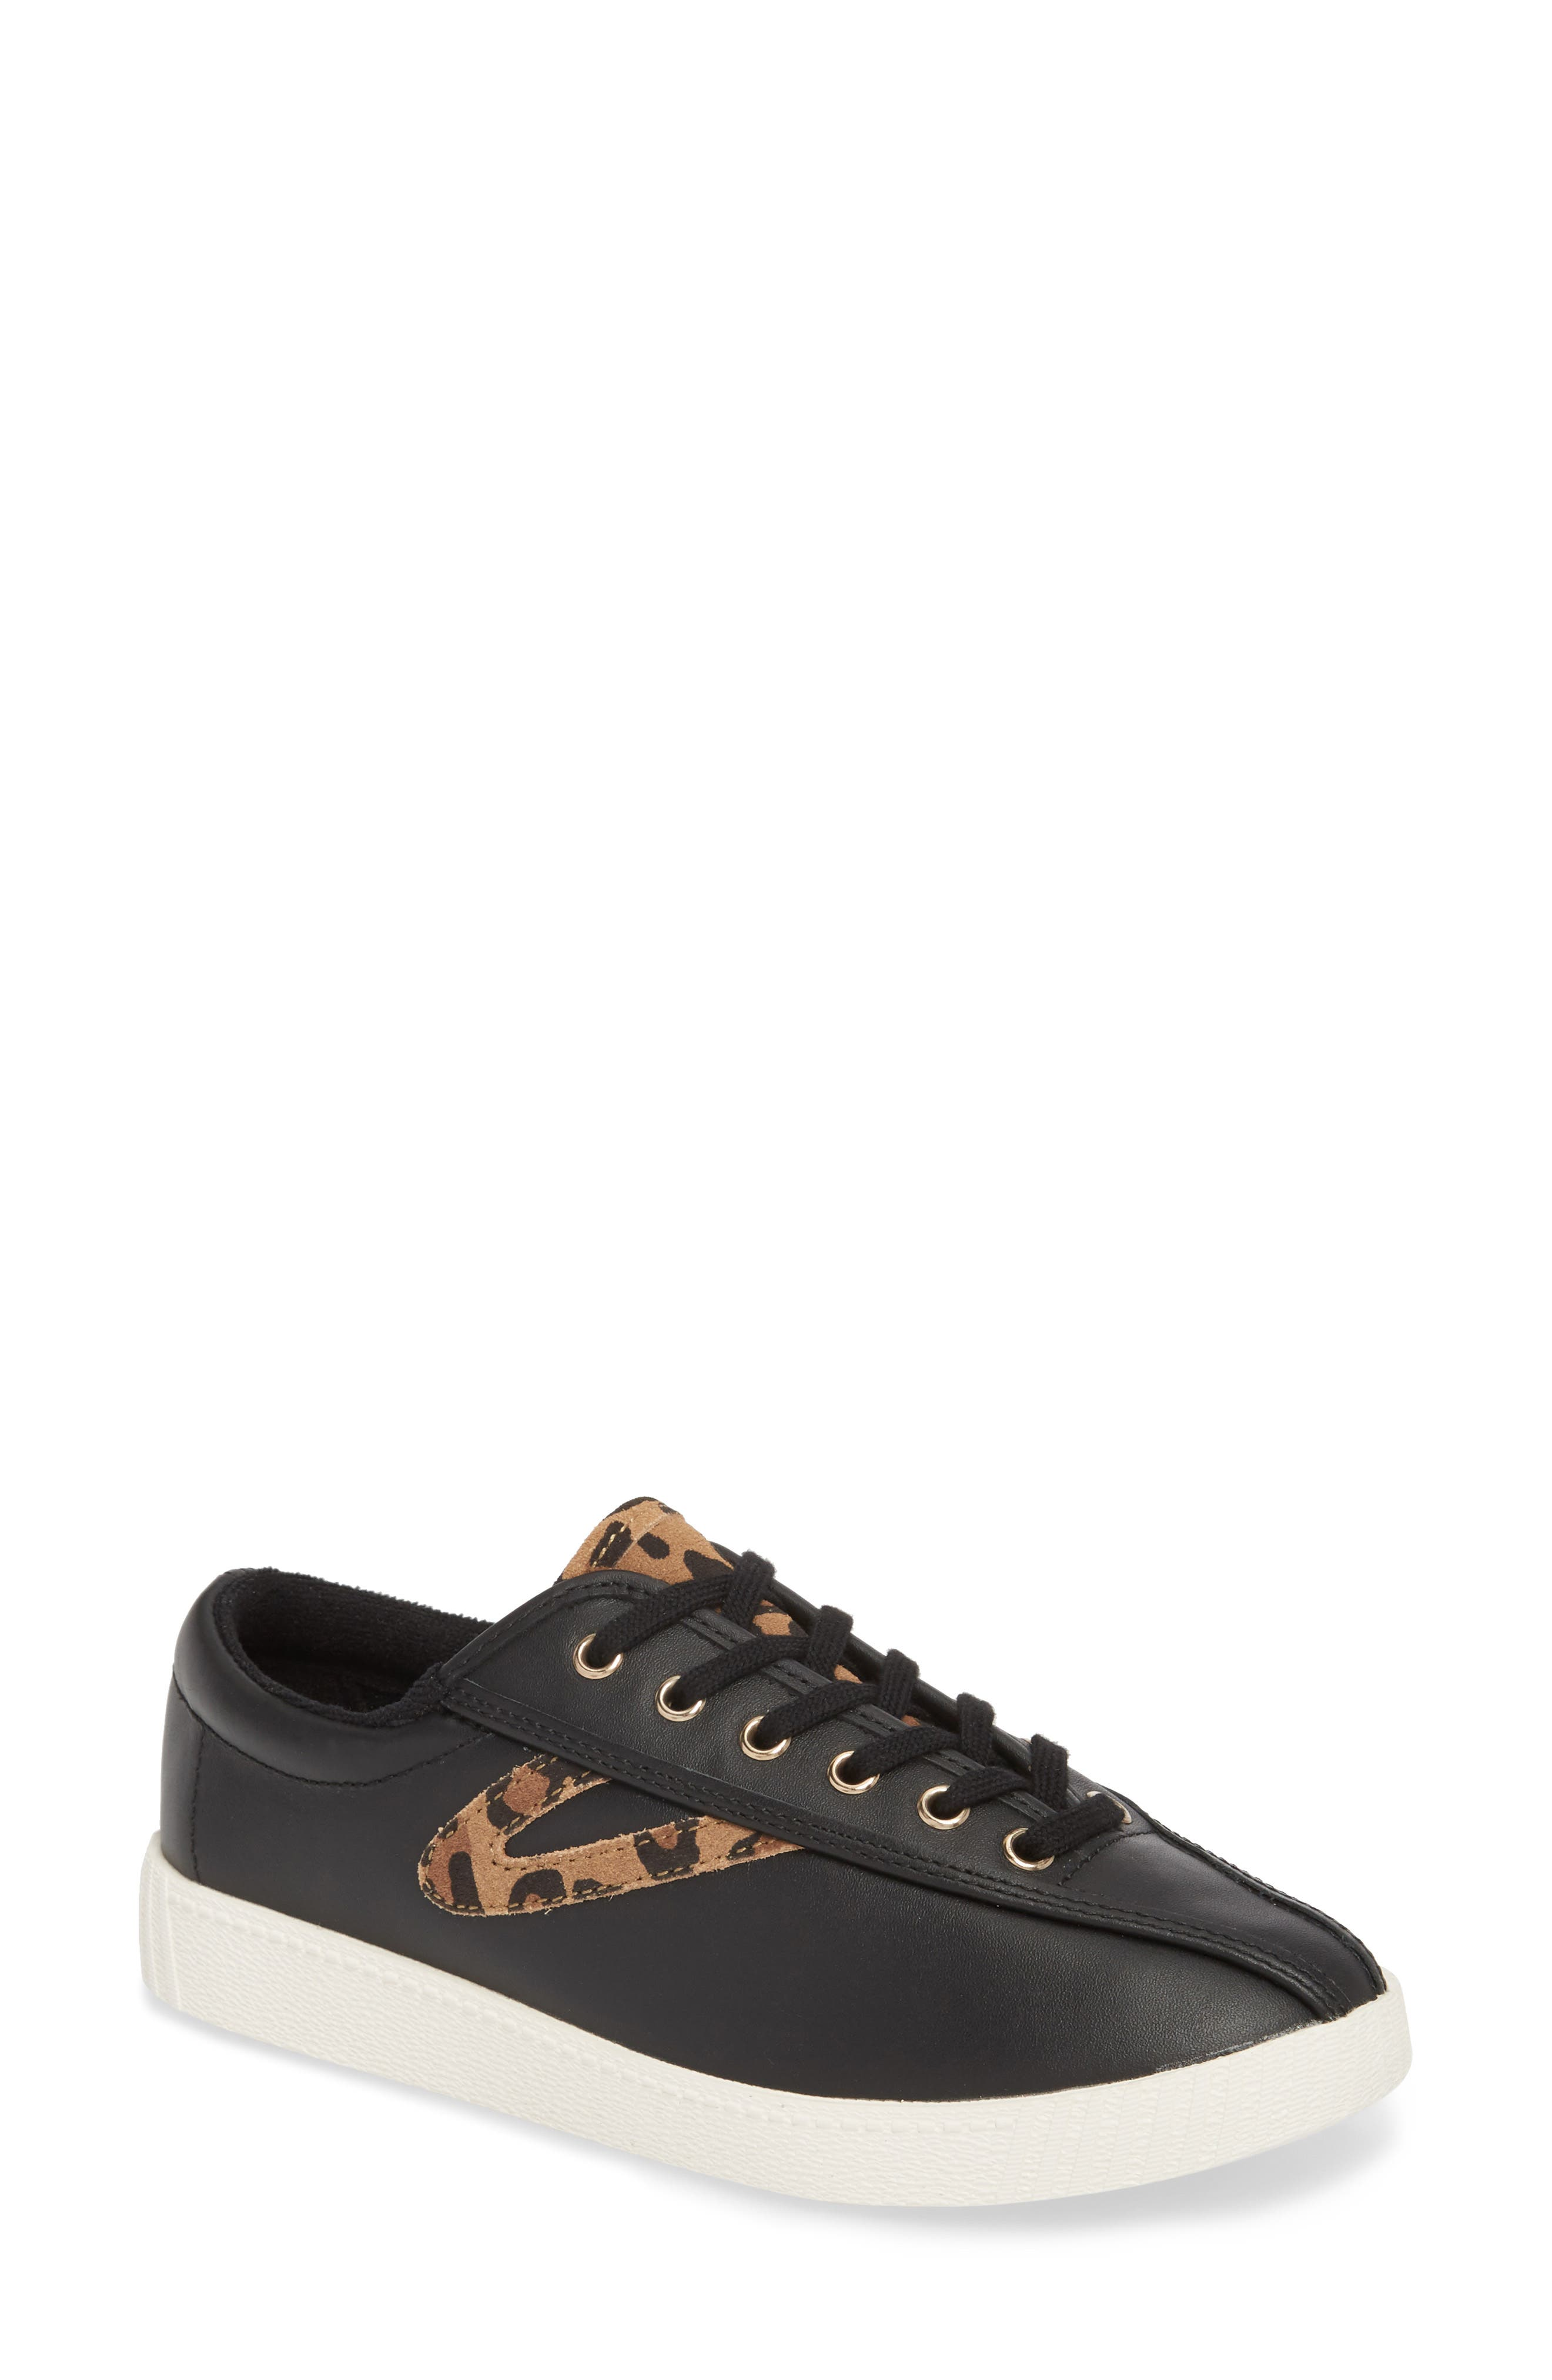 Patterned Sneaker,                         Main,                         color, BLACK/ TAN/ BLACK LEATHER